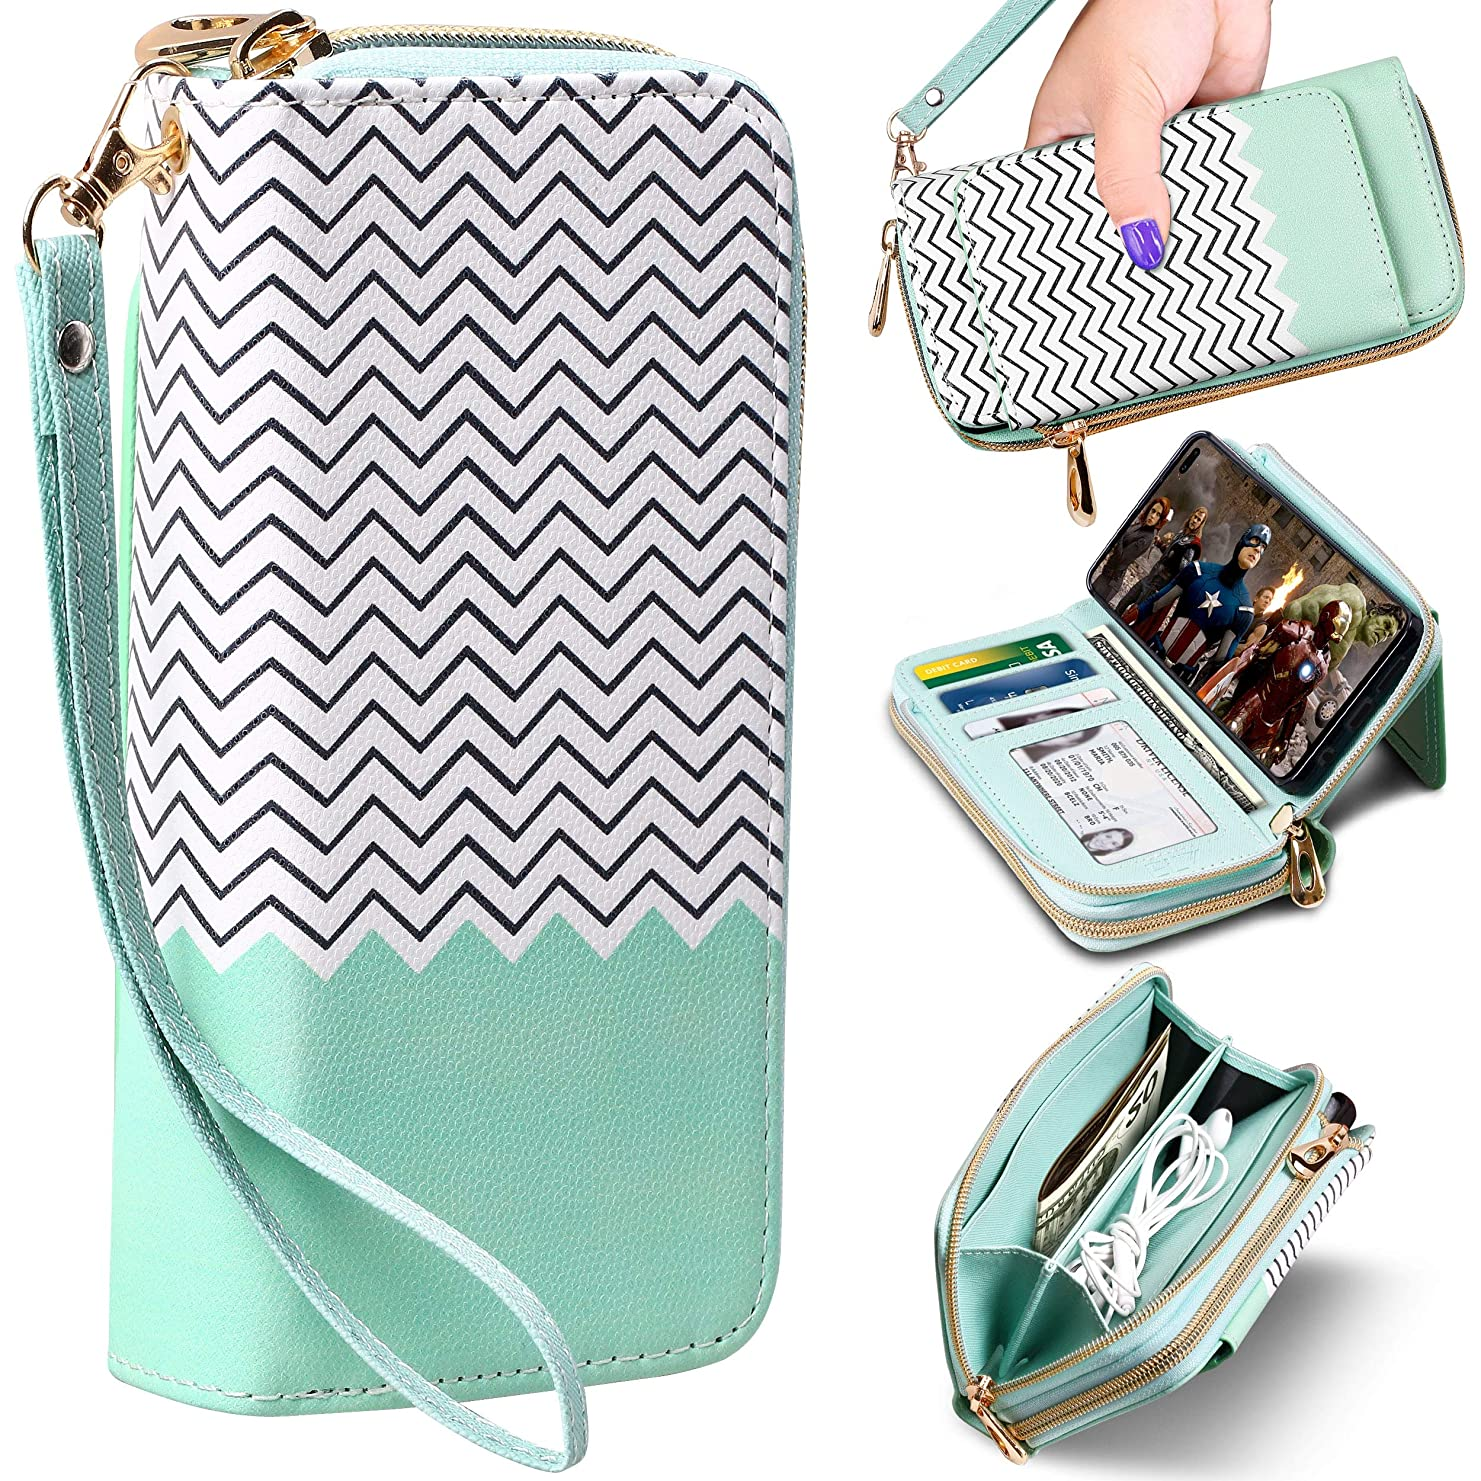 """ELV Luxury Handcrafted Purse Series Designed for Samsung Galaxy S10 Plus Case, PU Vegan Leather Wallet Case Cover for Galaxy S10+ (6.4"""") with Kickstand, Detachable Phone Case & Card Slots (Mint)"""